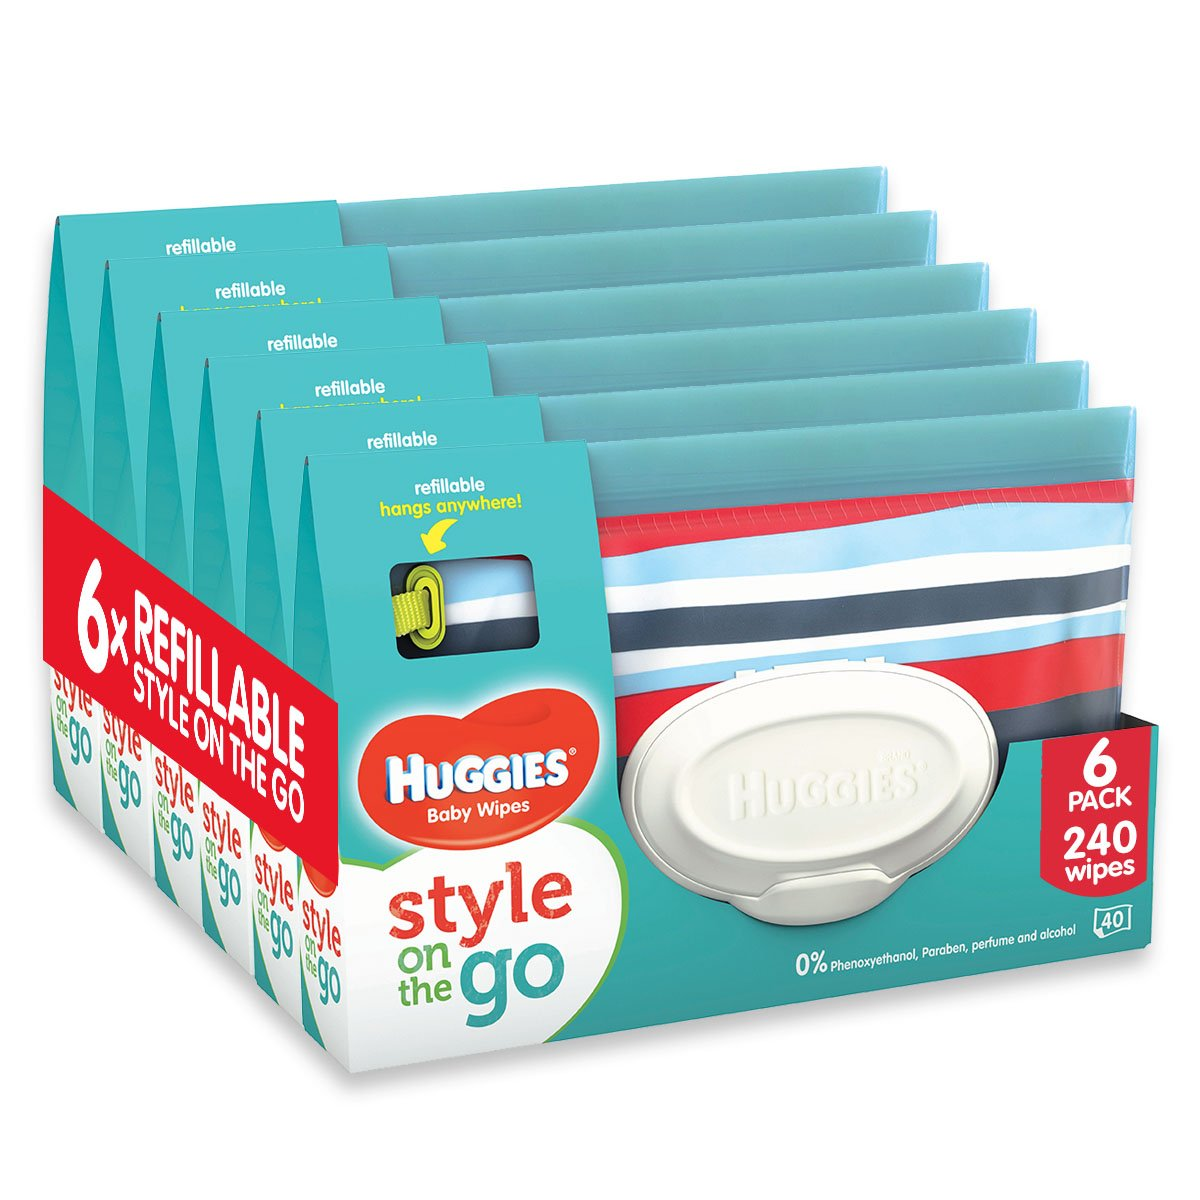 Huggies Style On The Go, 6 Pouches - 6 Refill Packs (240 Wipes Total) Kimberly Clark 2398240